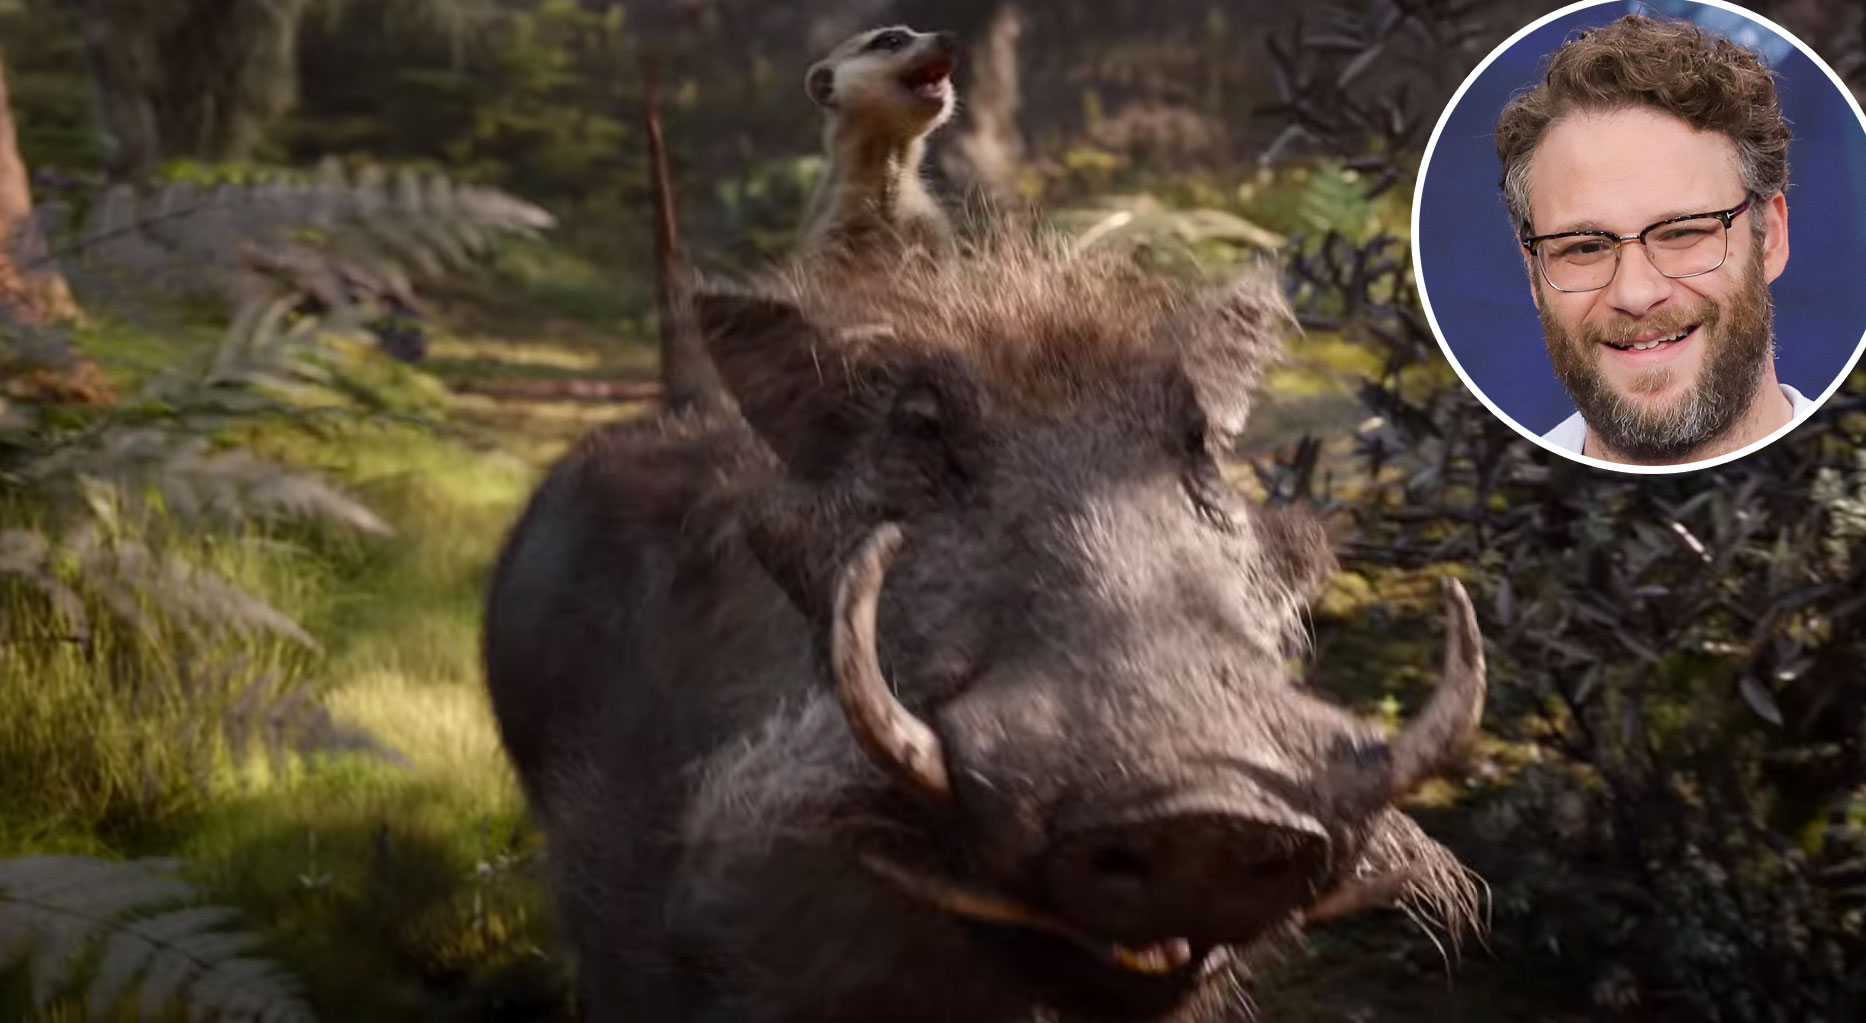 Seth Rogan Pumba Lion King Voice Over Disney and Pixar Characters - Pumba in The Lion King (2019)